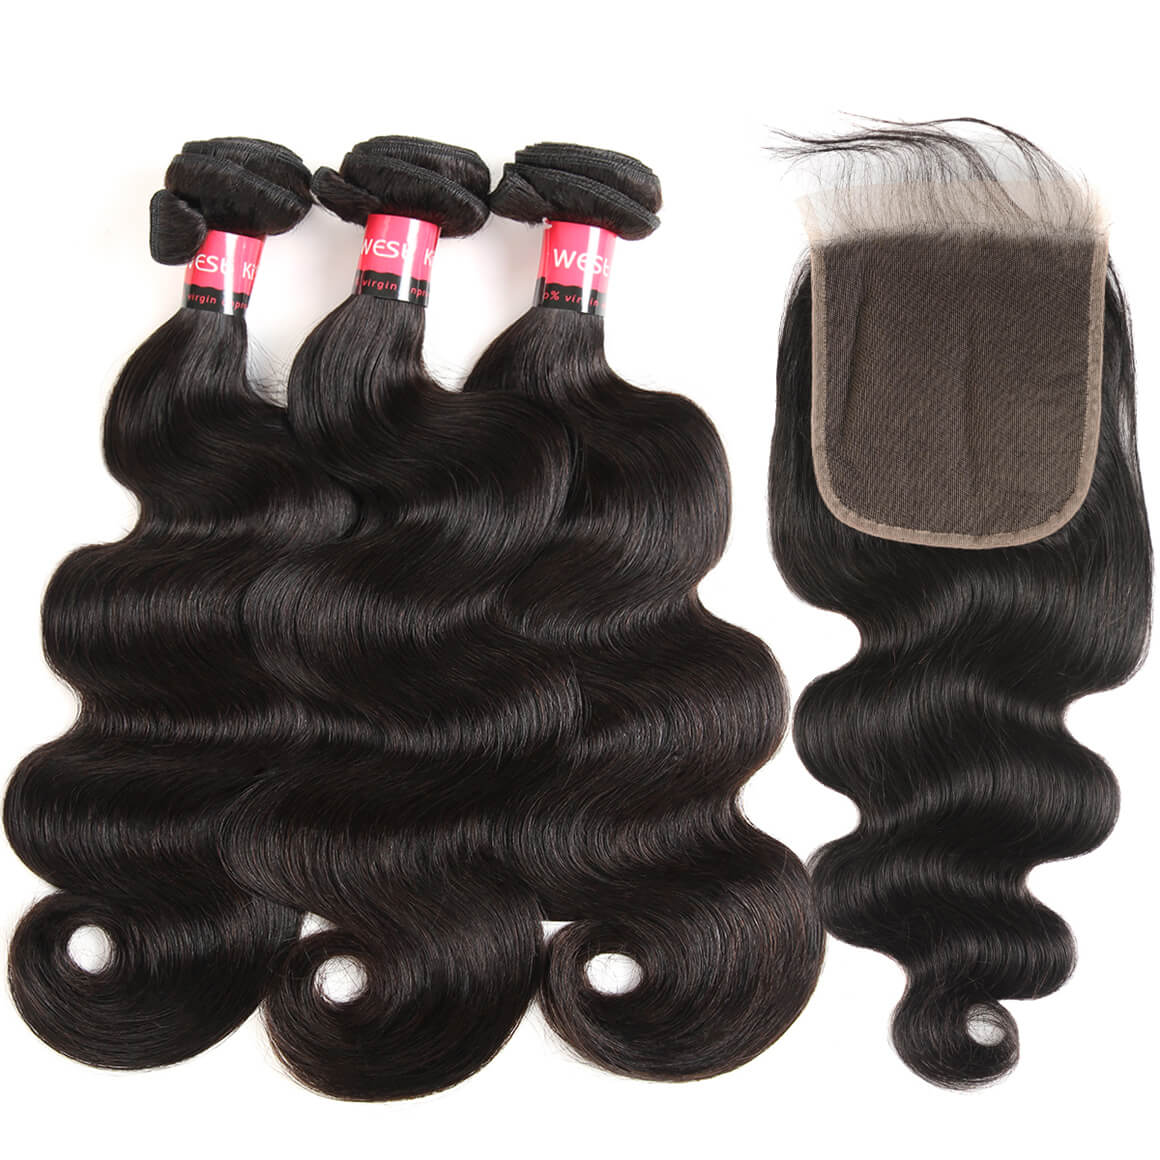 Brazilian Body Wave Hair Bundles 3 Bundles